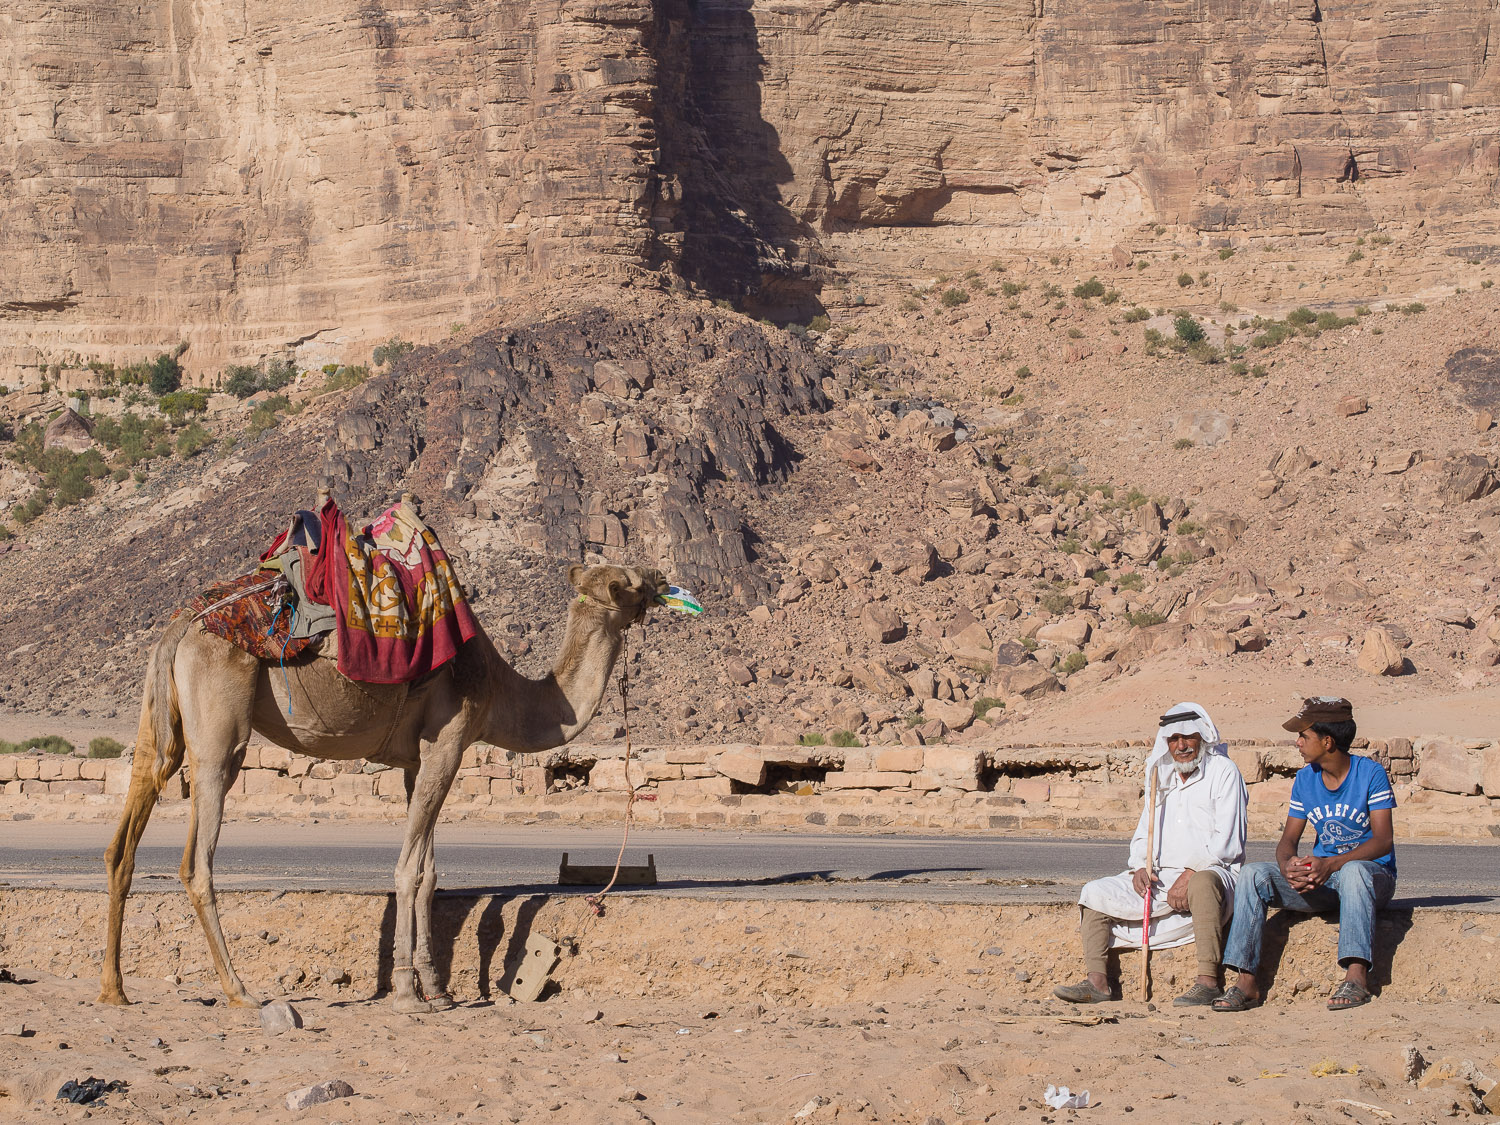 The people, the landscape, the camels